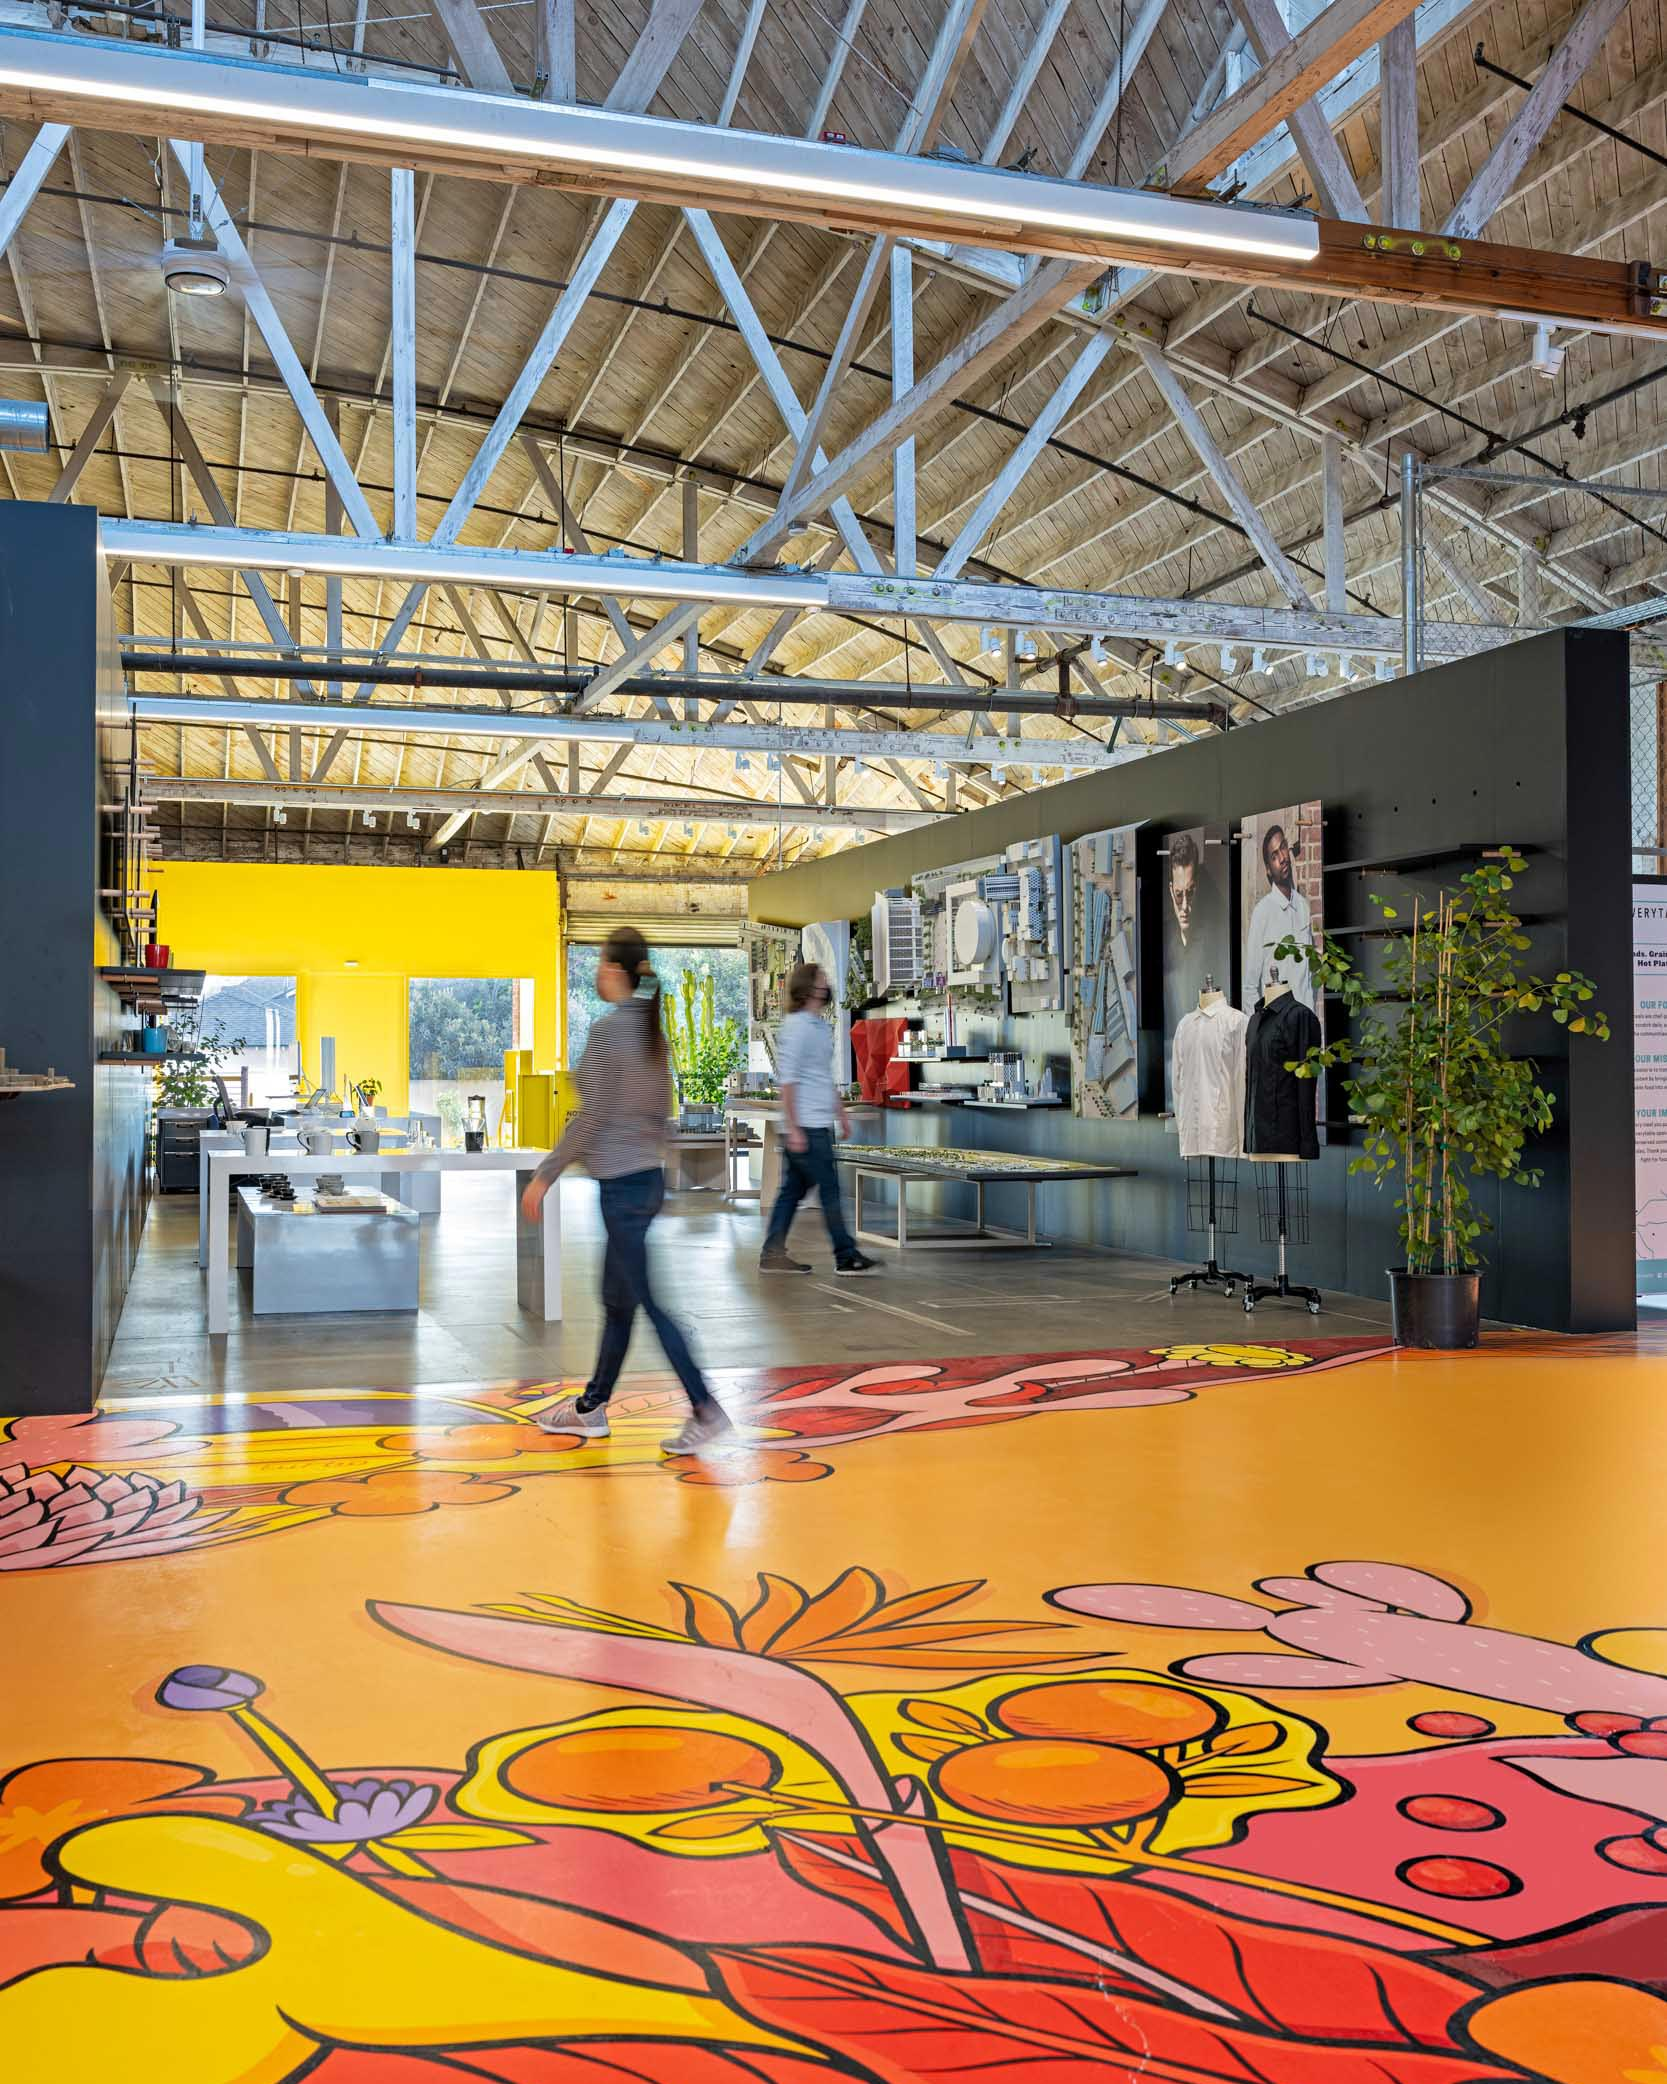 Interior shot of RIOS office with a red, pink, and yellow mural on the ground and industrial ceilings